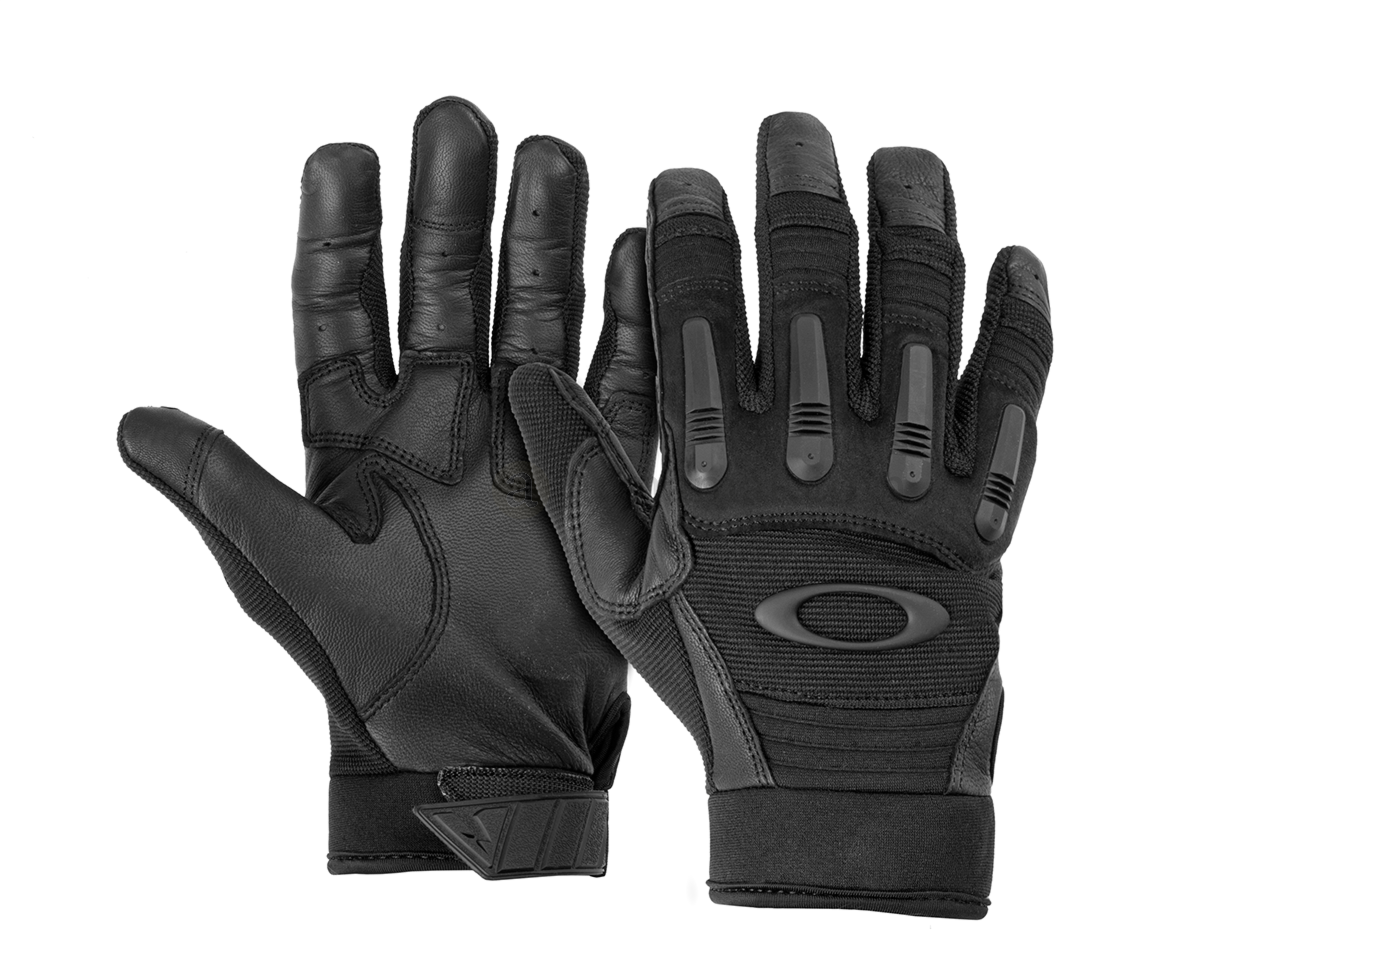 df8acb0bc4 Oakley Transition Tactical Gloves